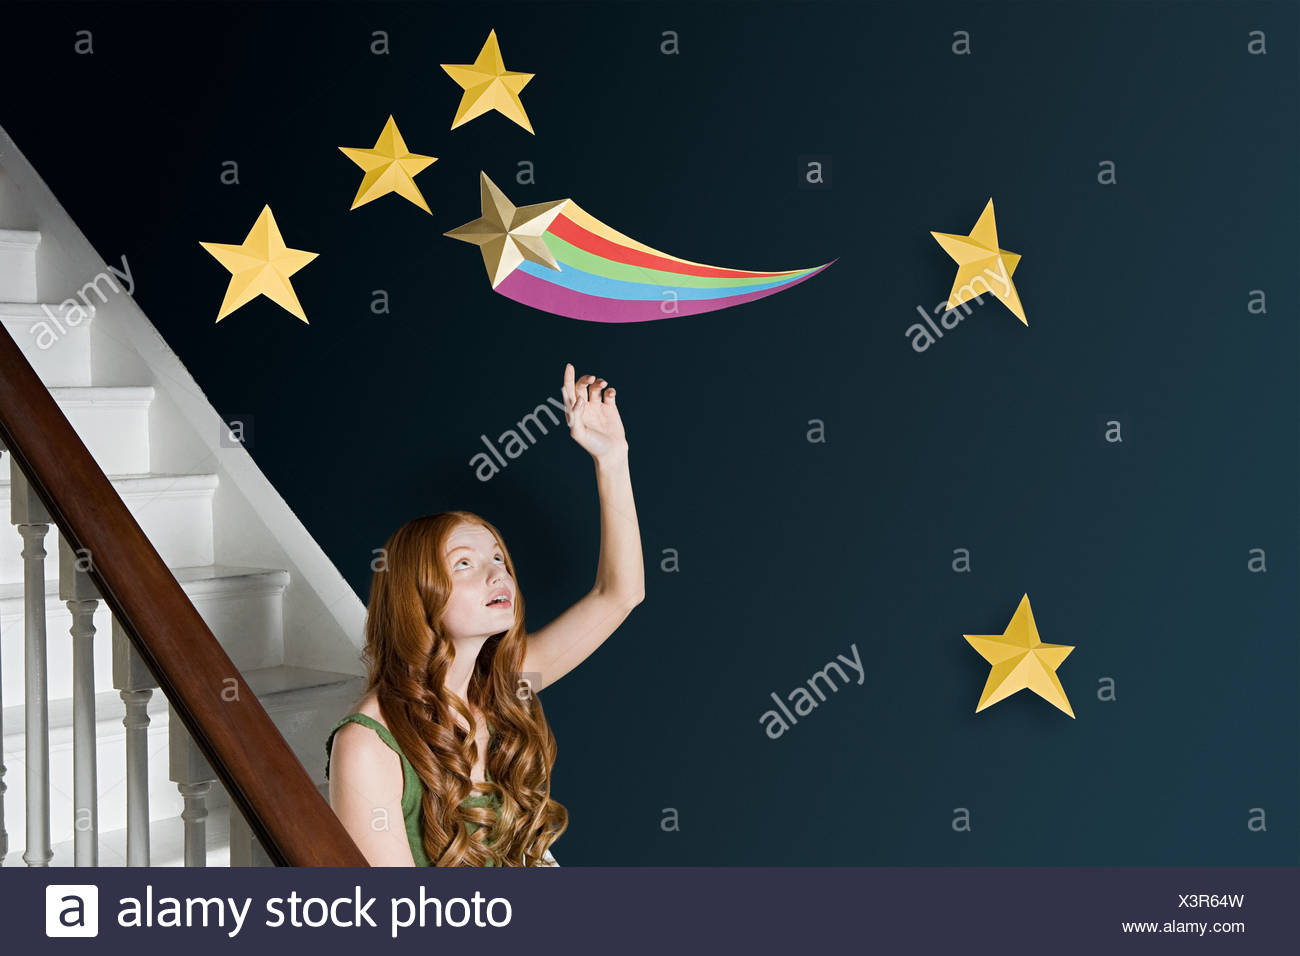 A woman reaching for a shooting star - Stock Image